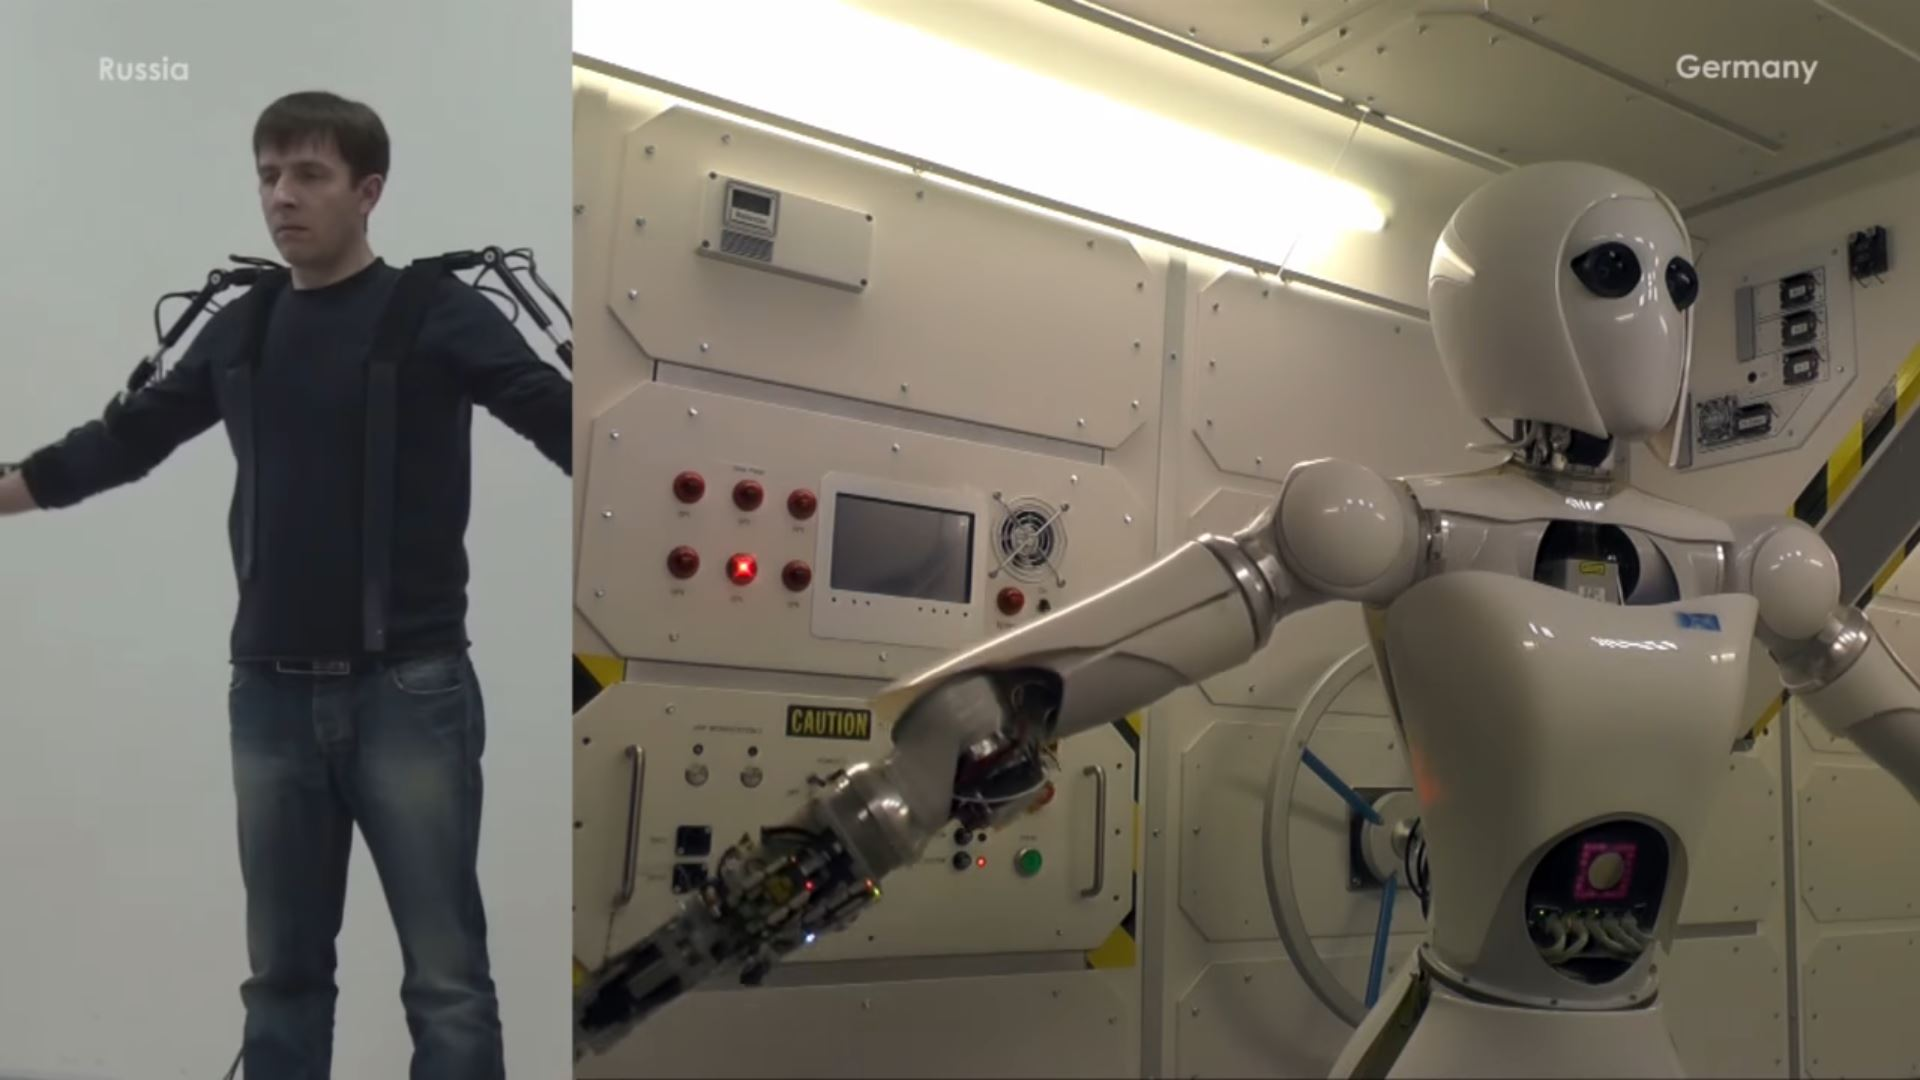 Meet Aila, The German Robot Controlled From Russia With An